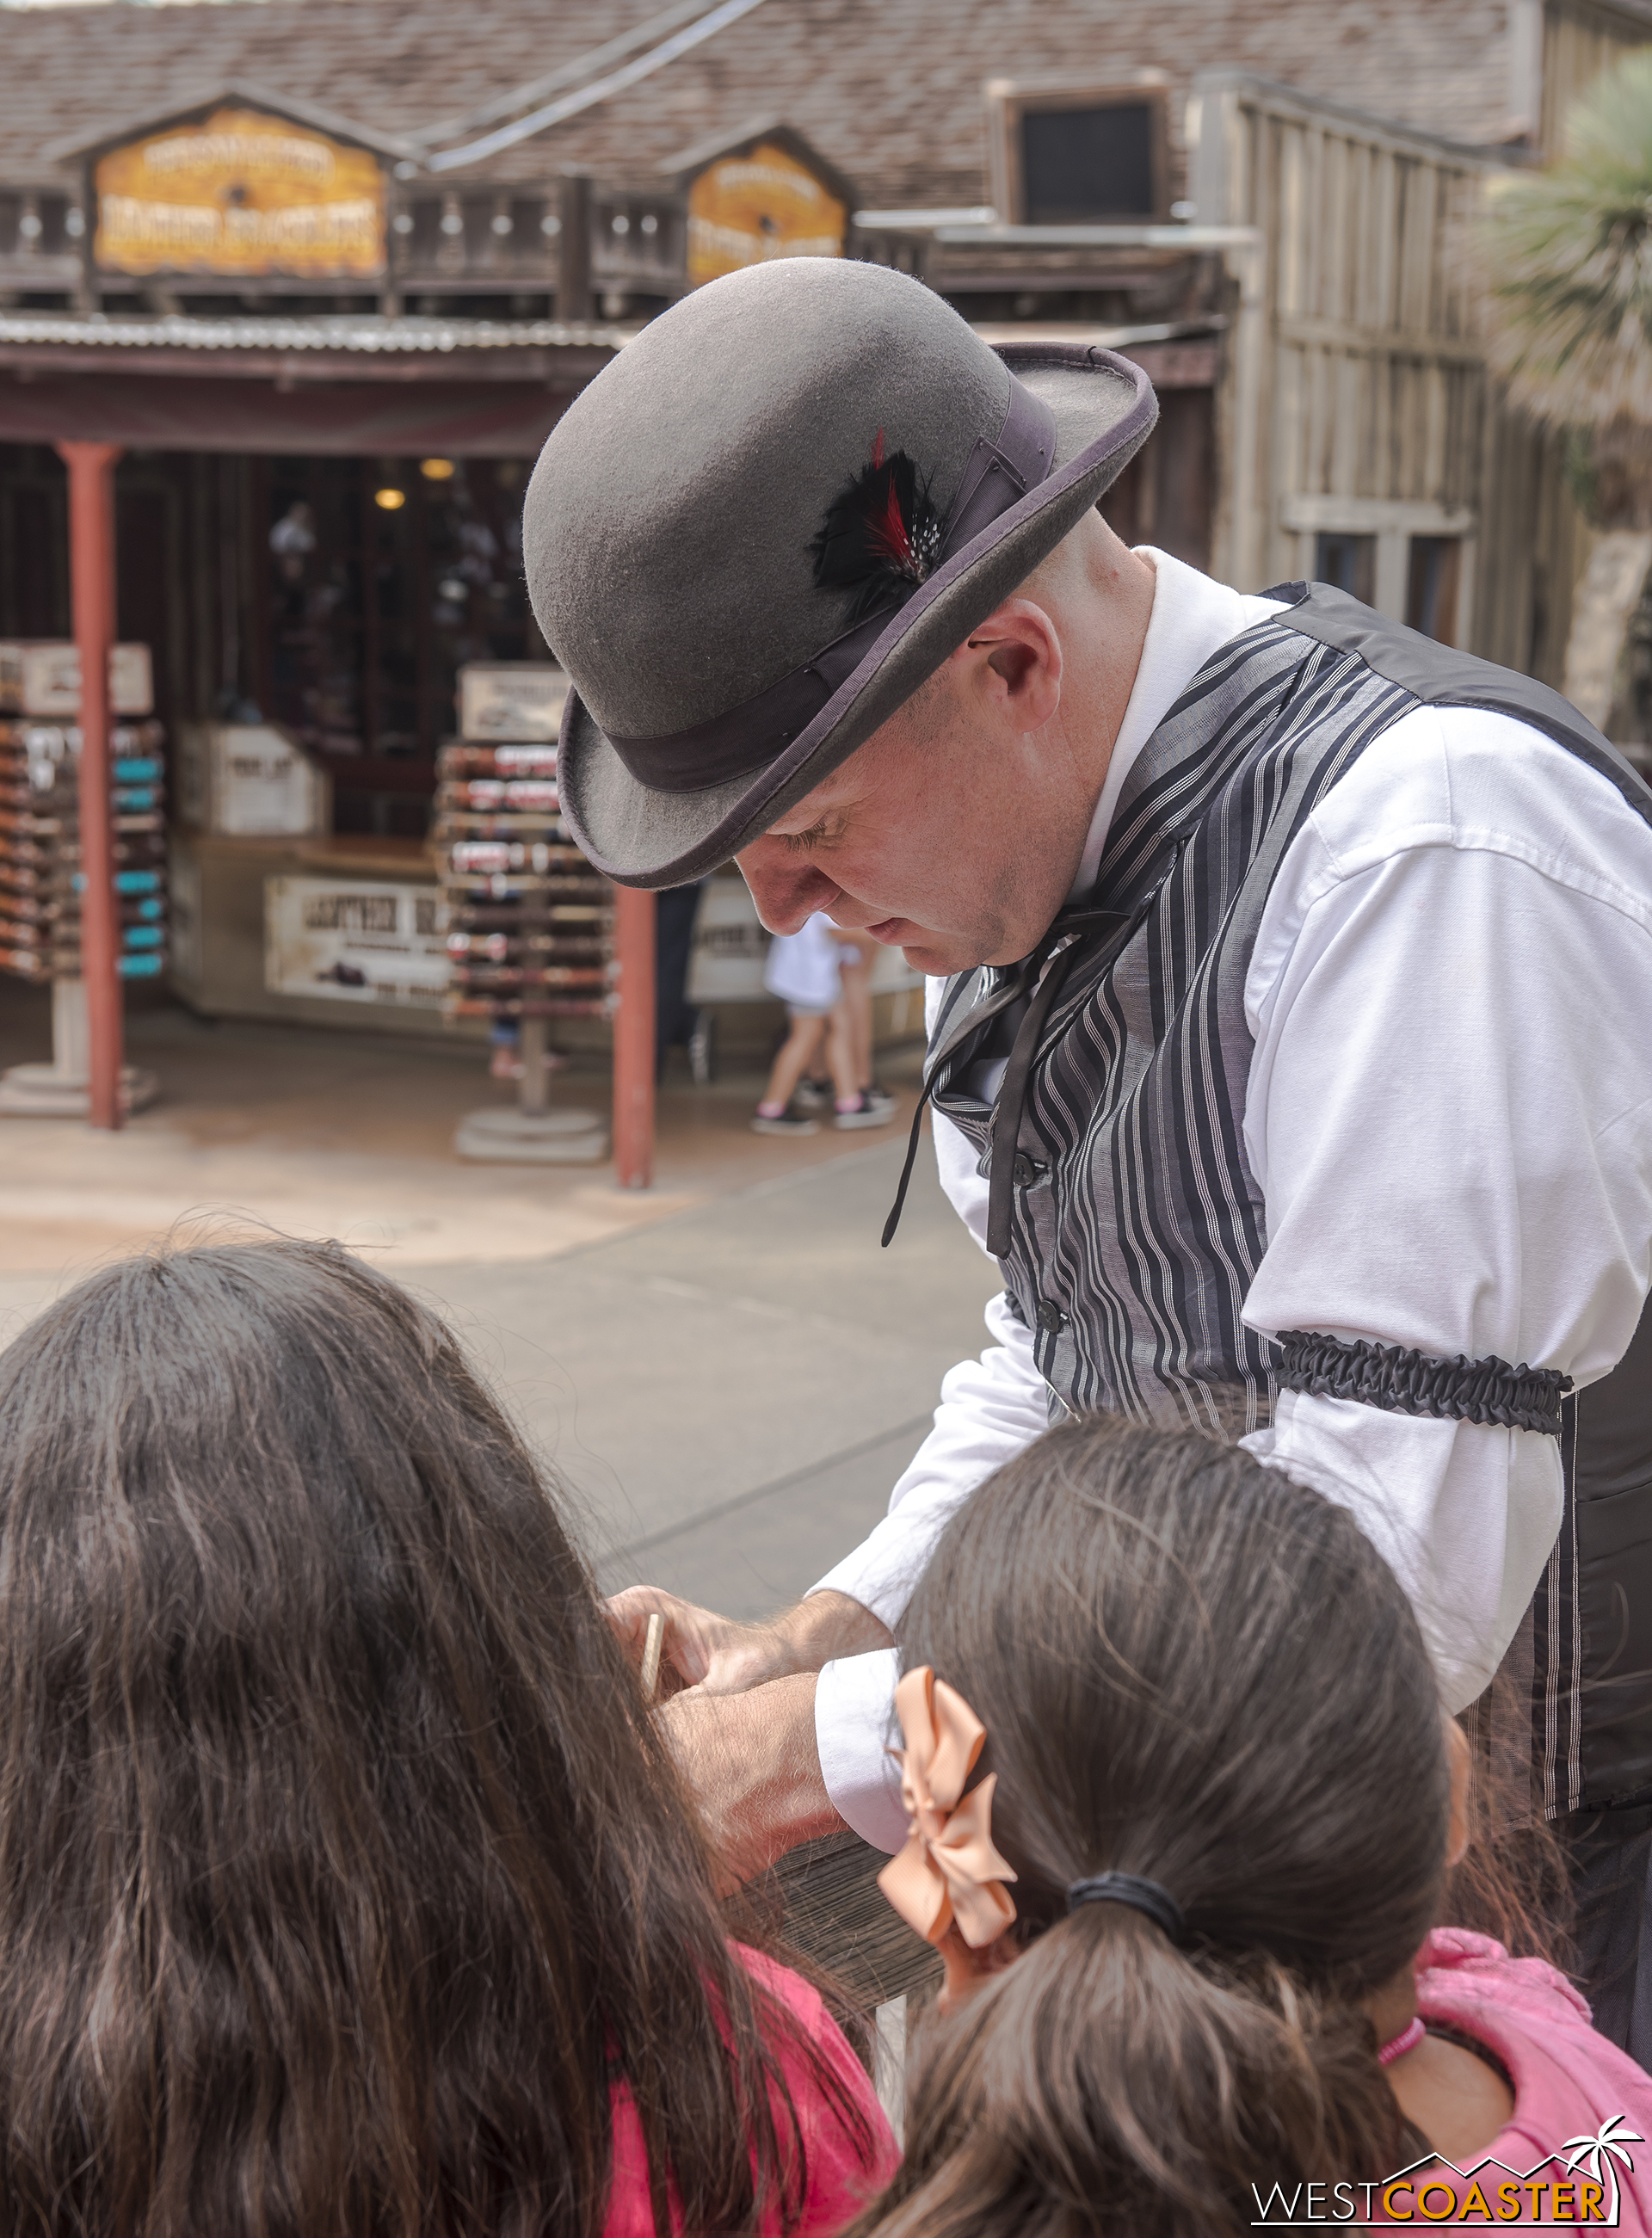 Colonel Potter engages with two young guests, asking them to help with a task.